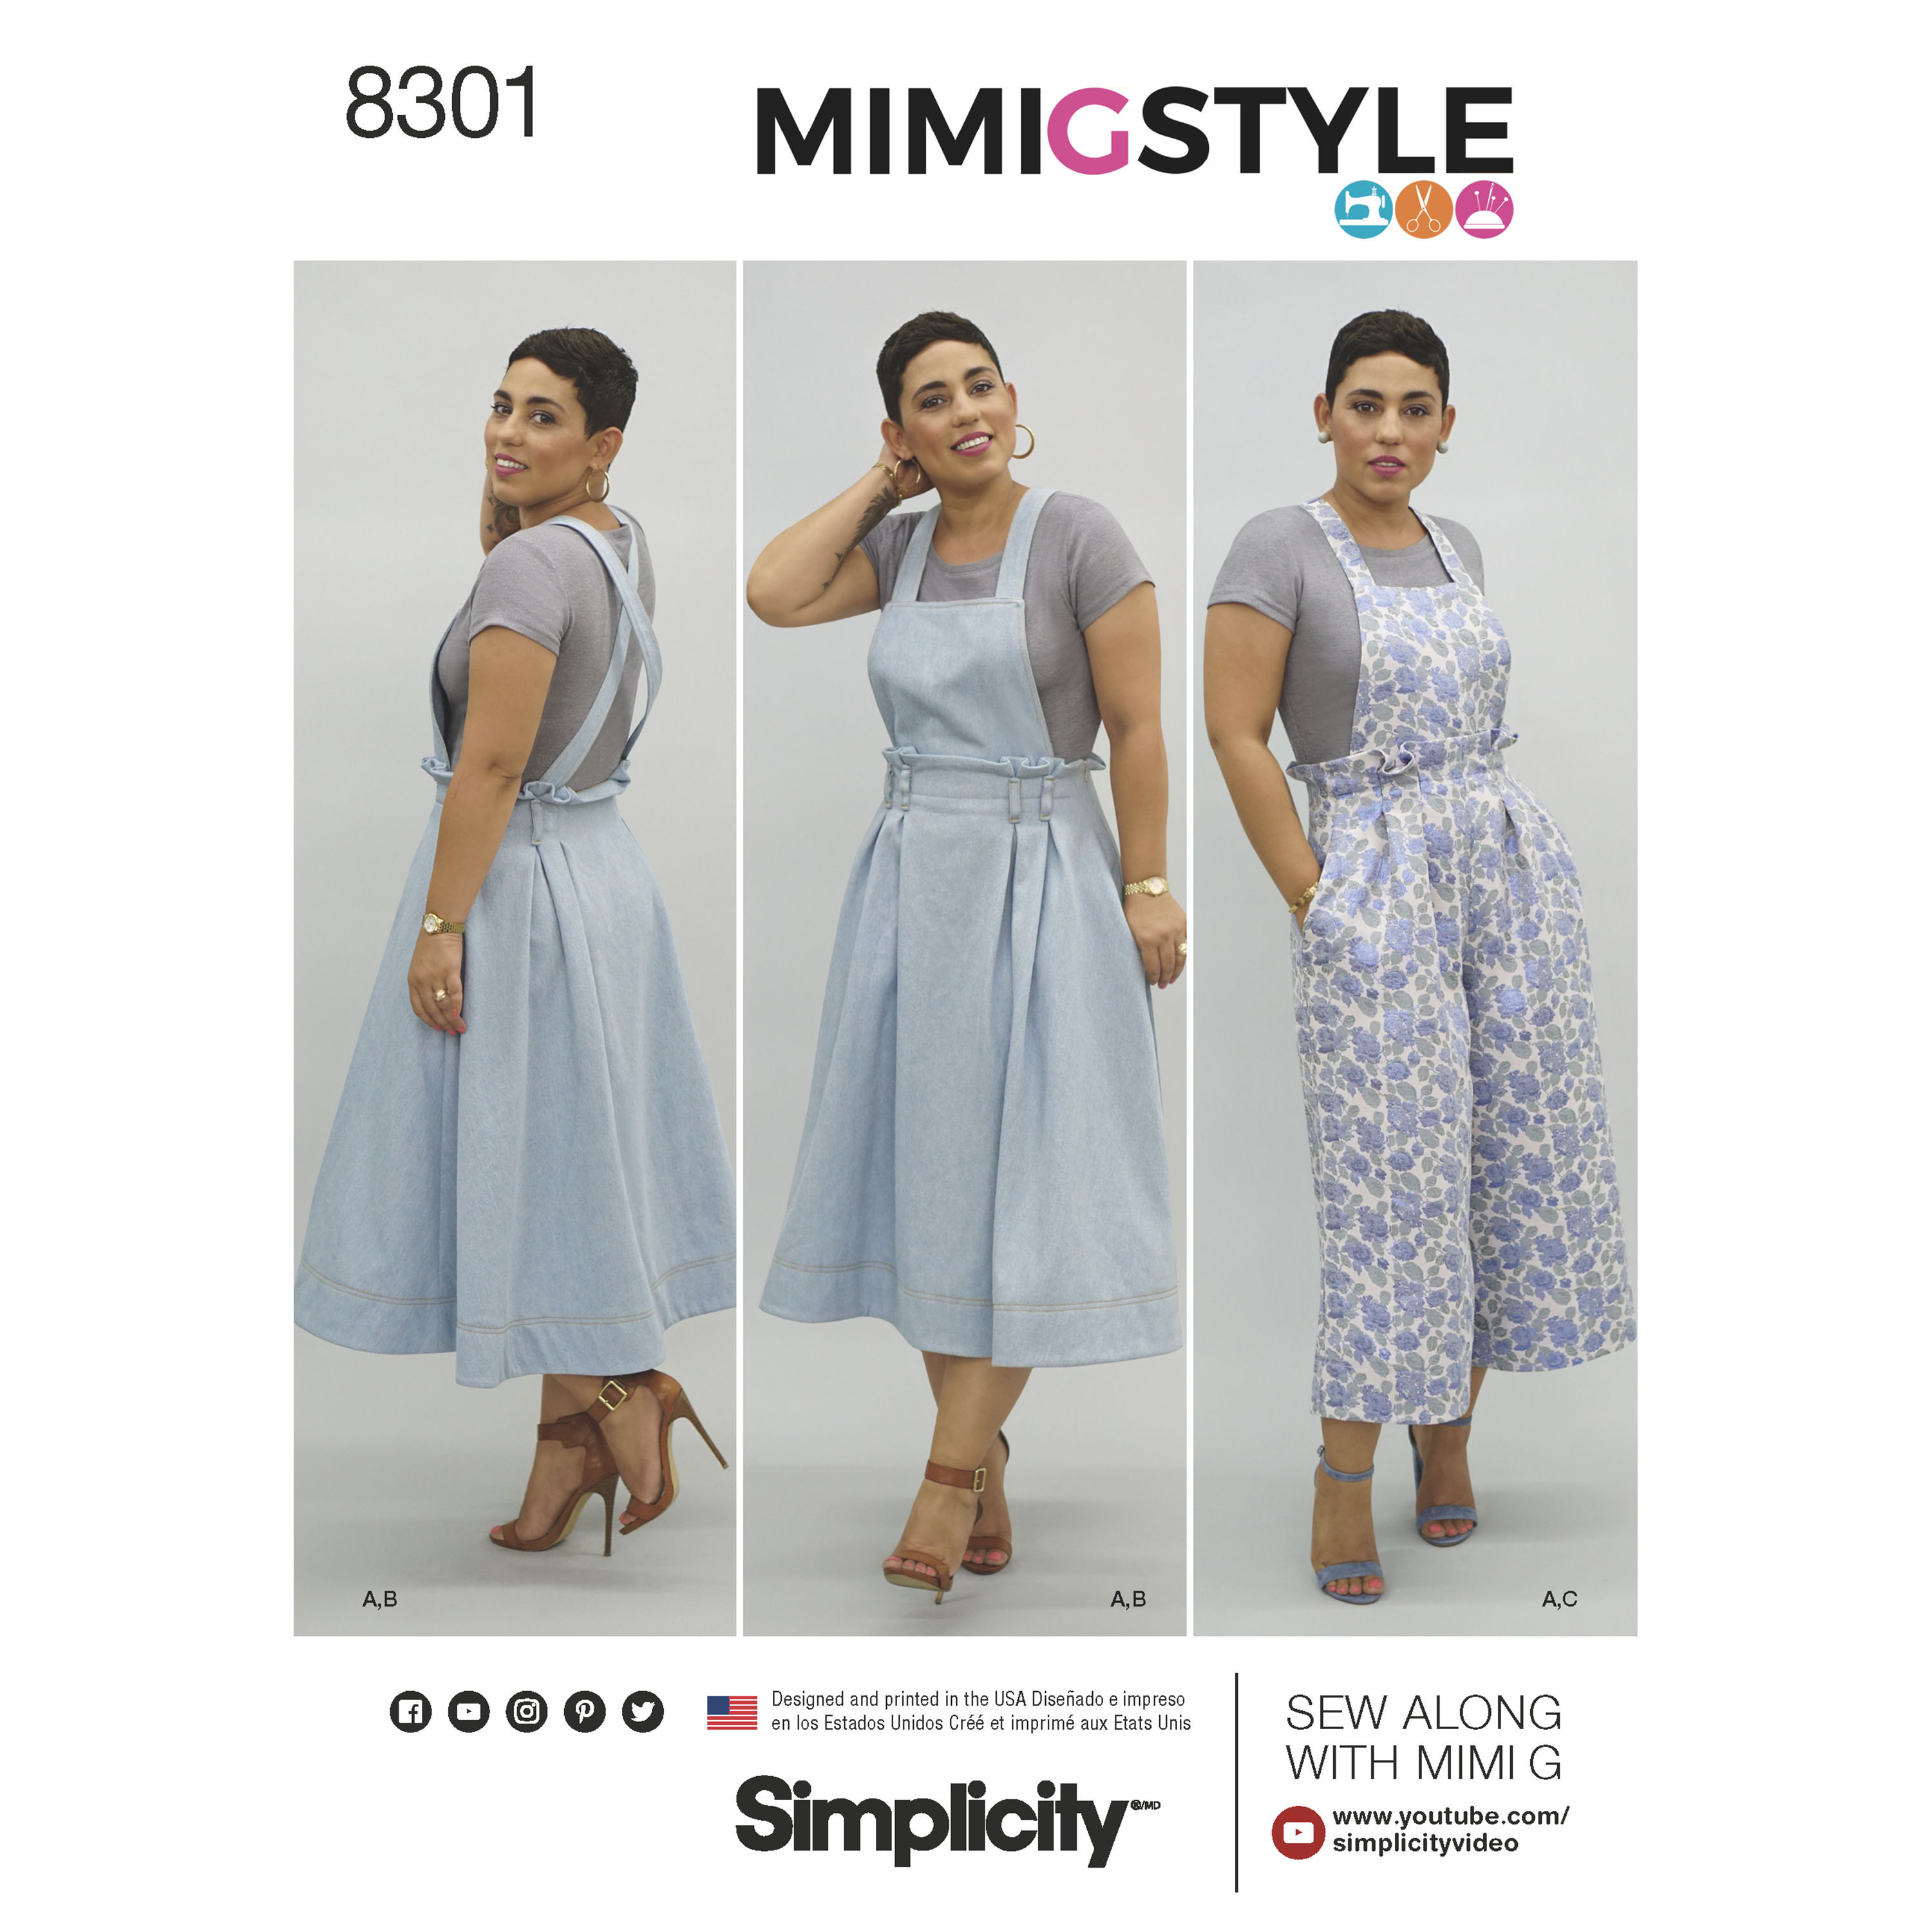 Simplicity 8301 Mimi G Style Misses' Overalls and Knit ...